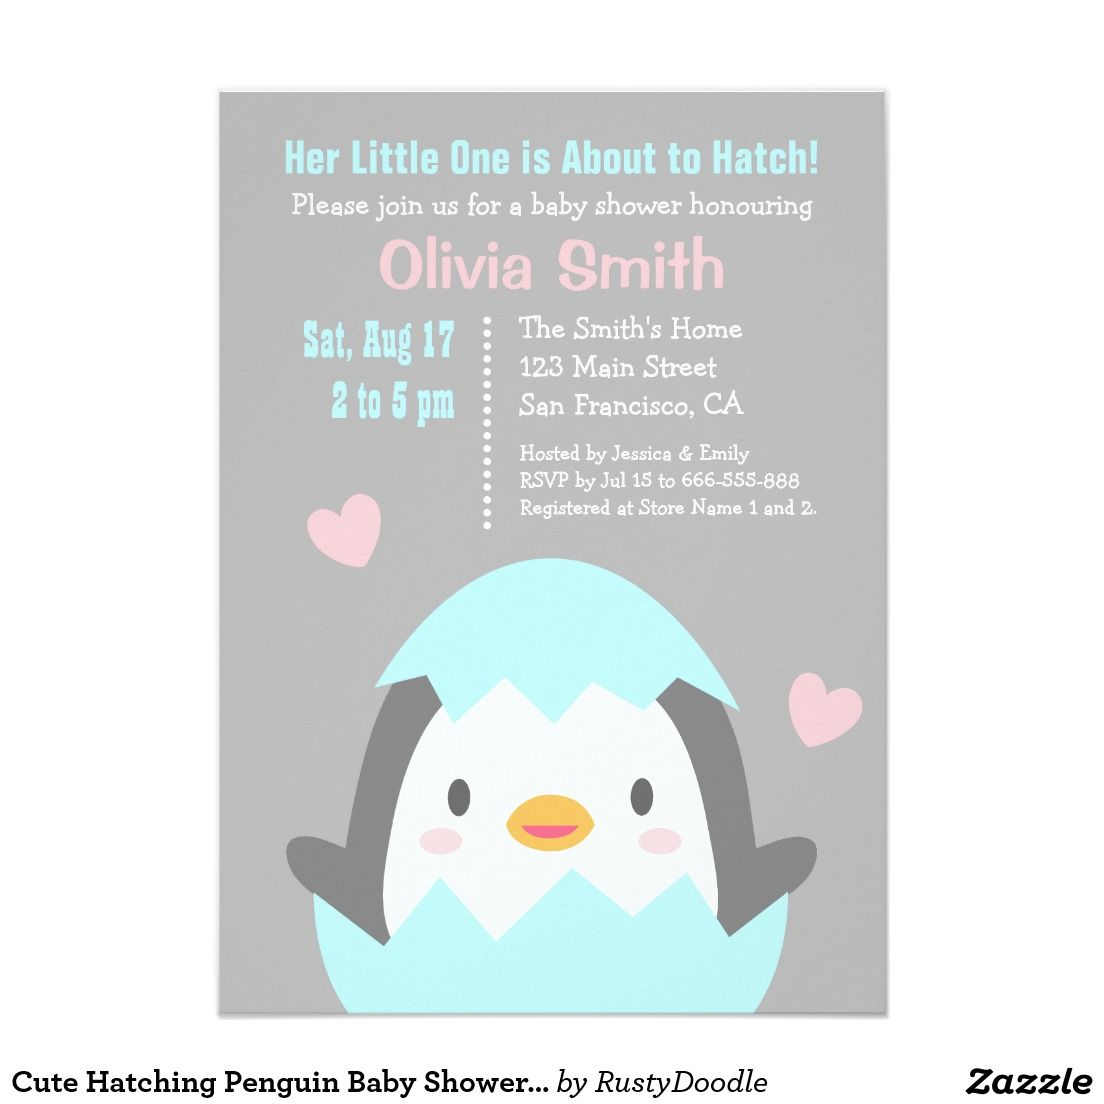 Cute Hatching Penguin Baby Shower Invitations | Baby showers y Bebe